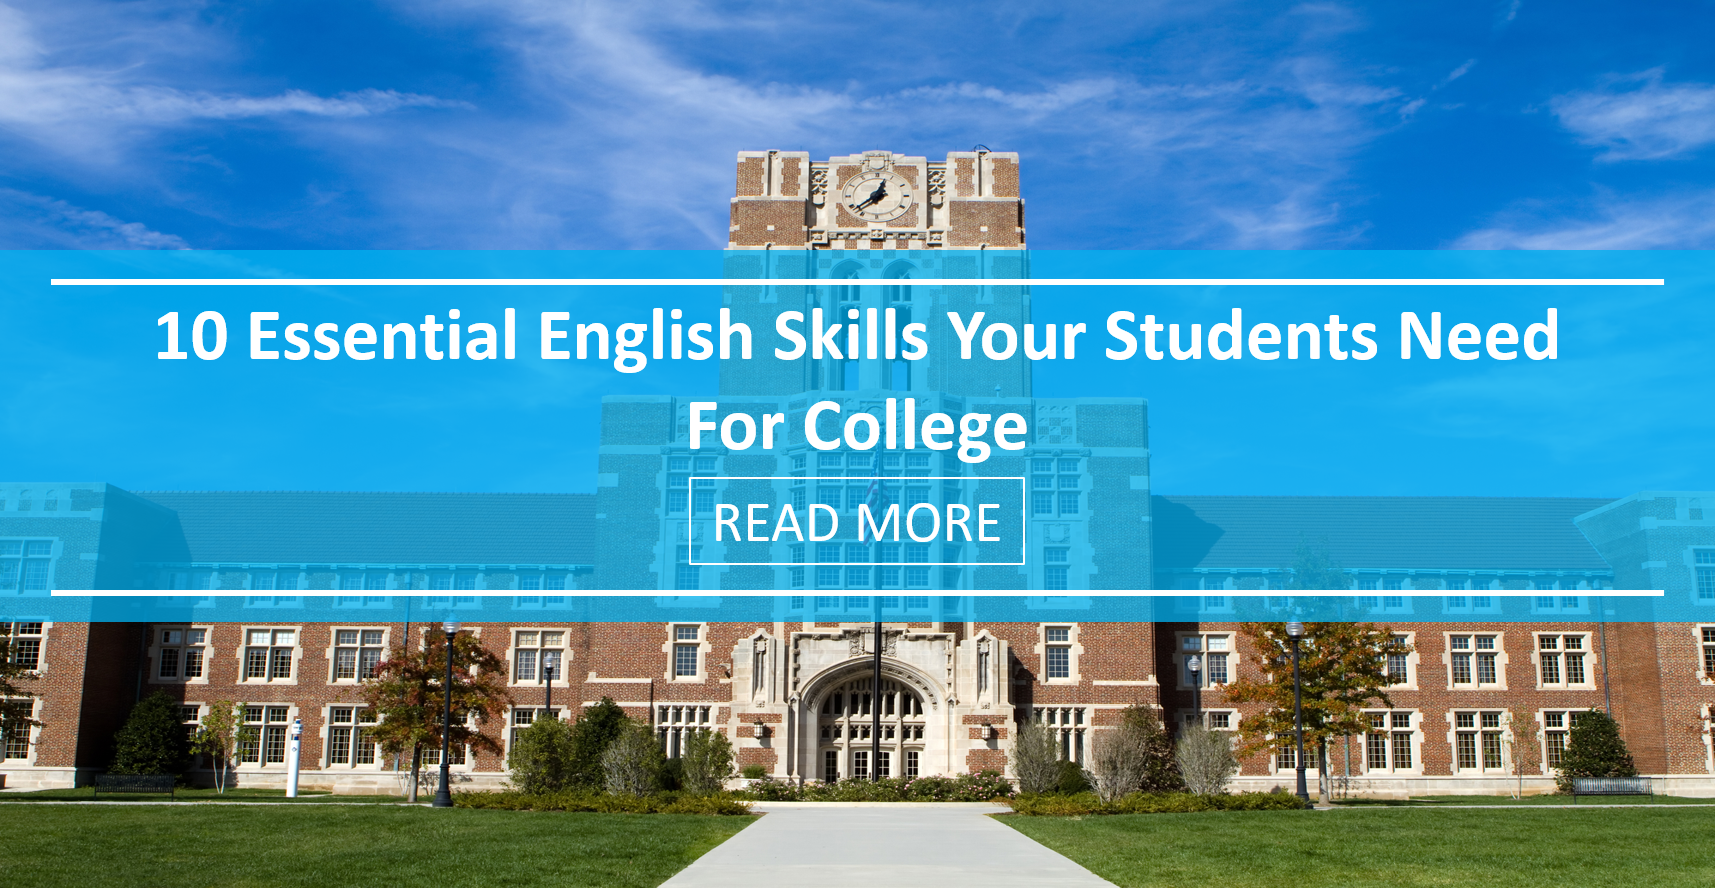 10 Essential English Skills Your Students Need for College